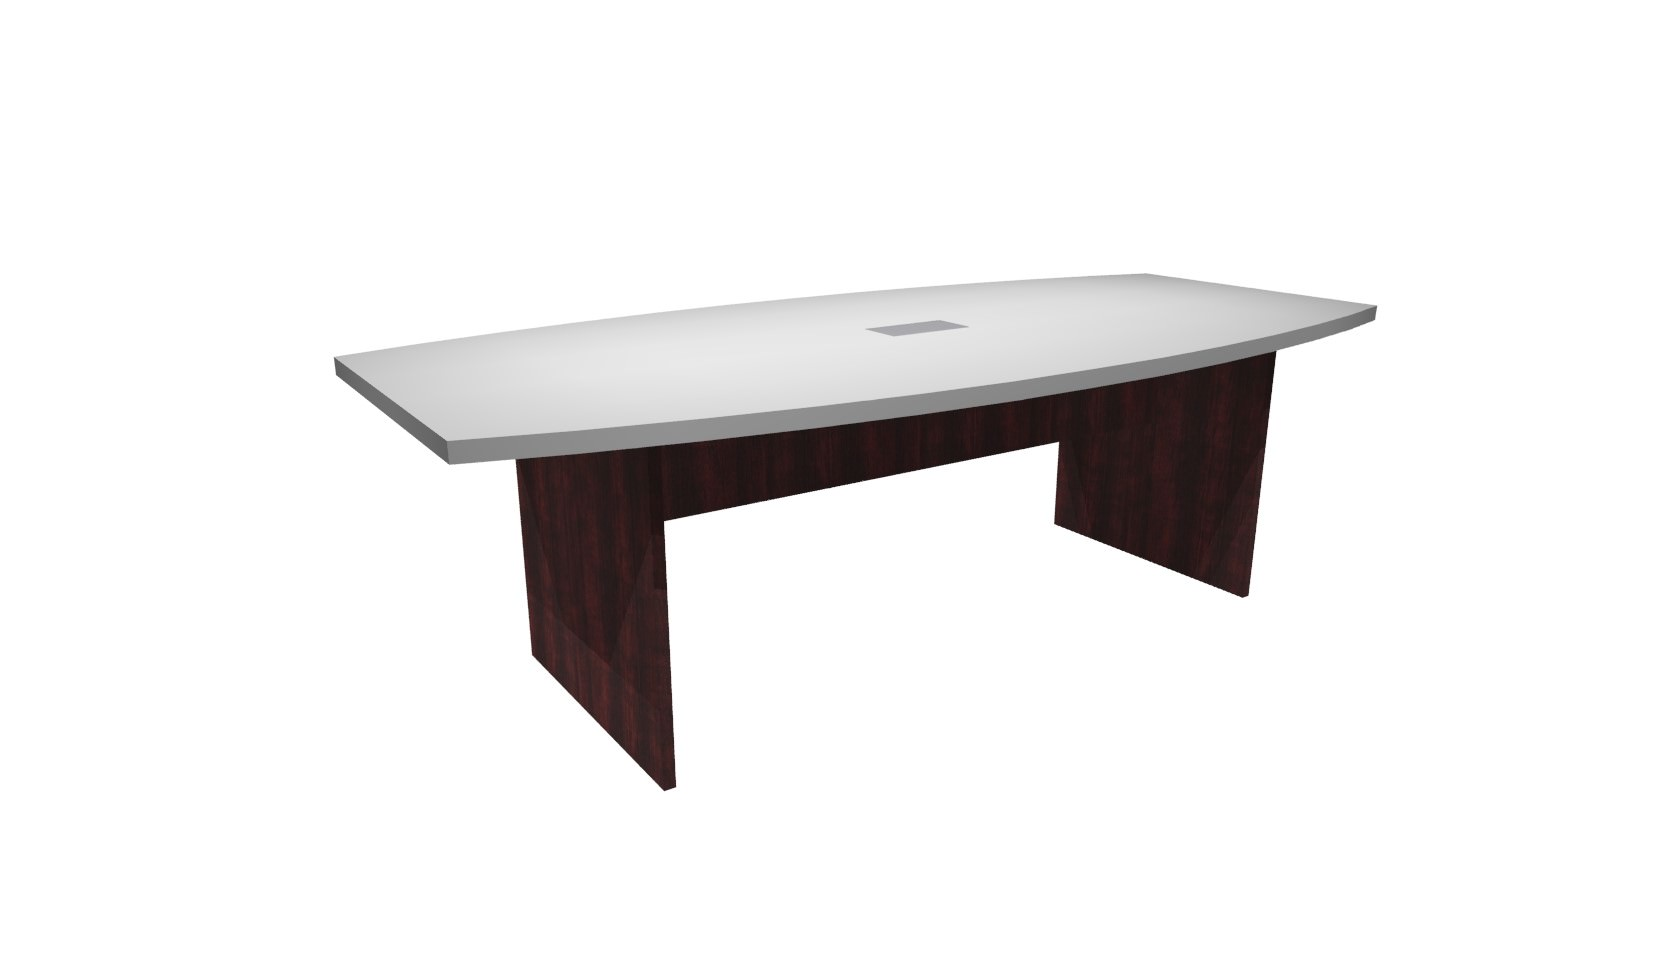 FT White Mahogany Boat Shaped Conference Table - 8 ft conference table